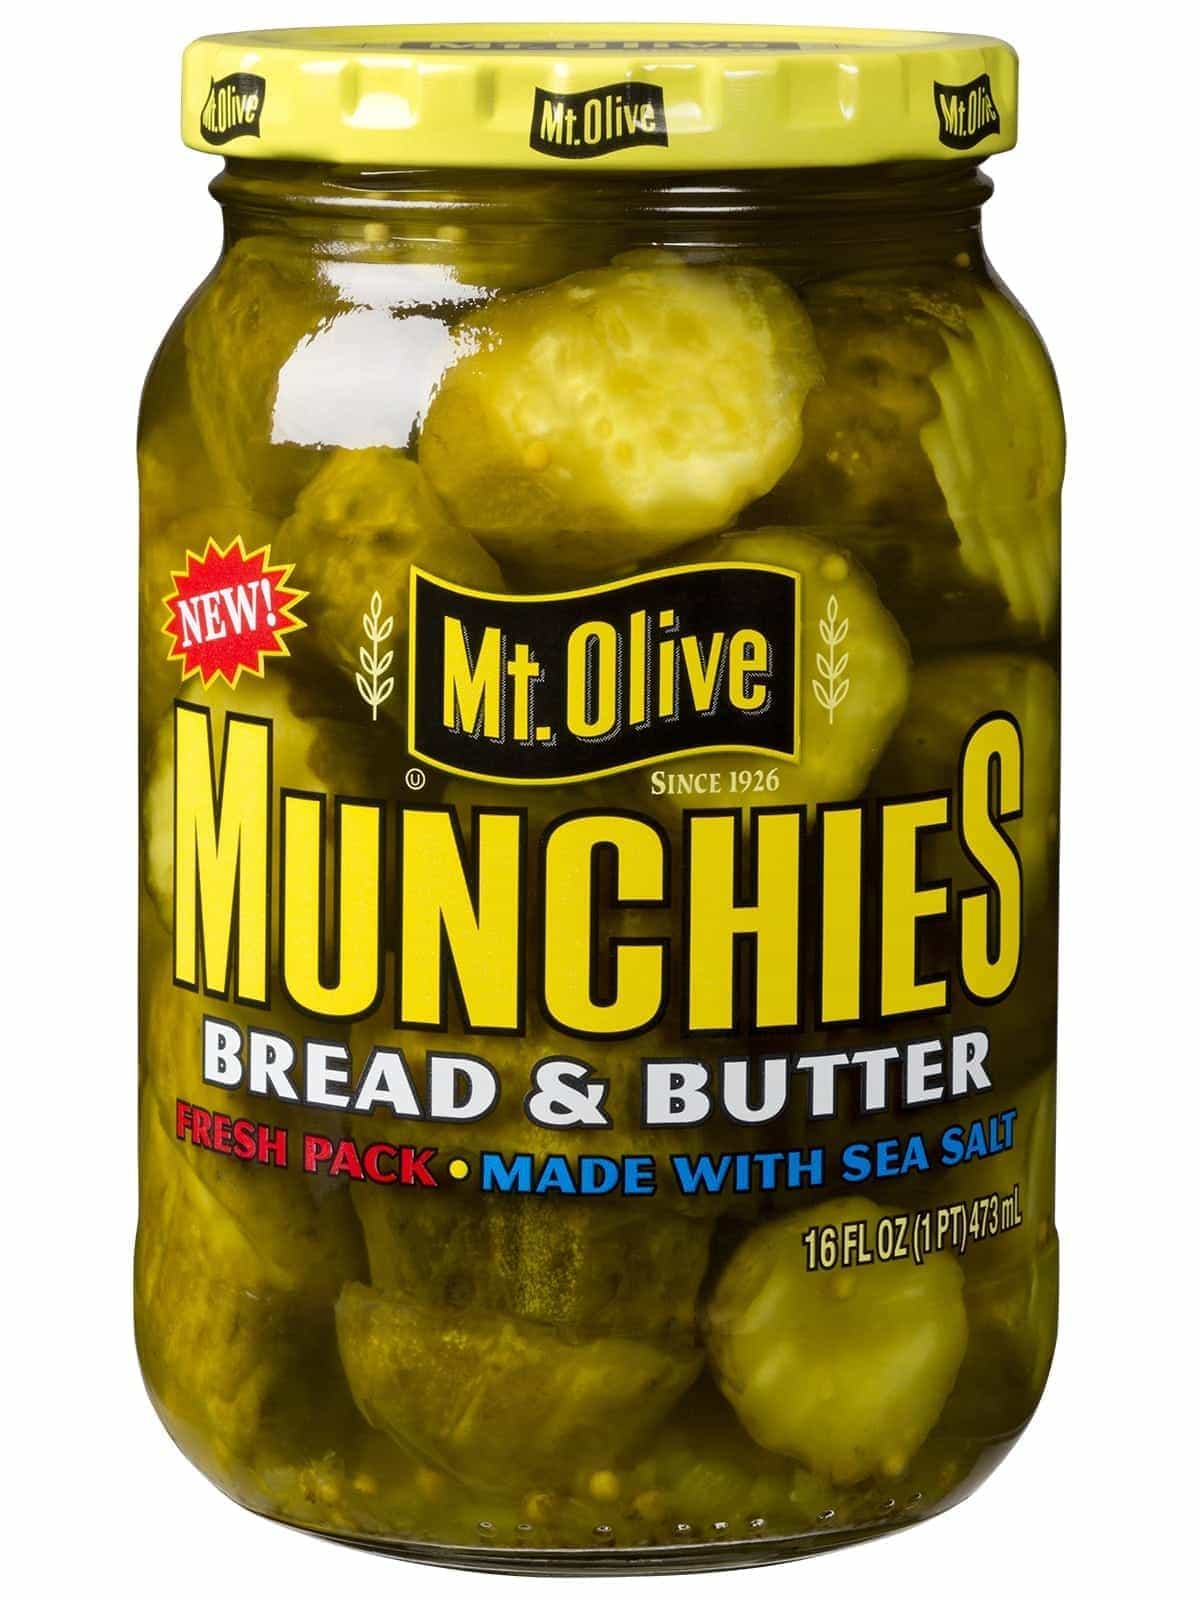 Munchies Bread and Butter Jar